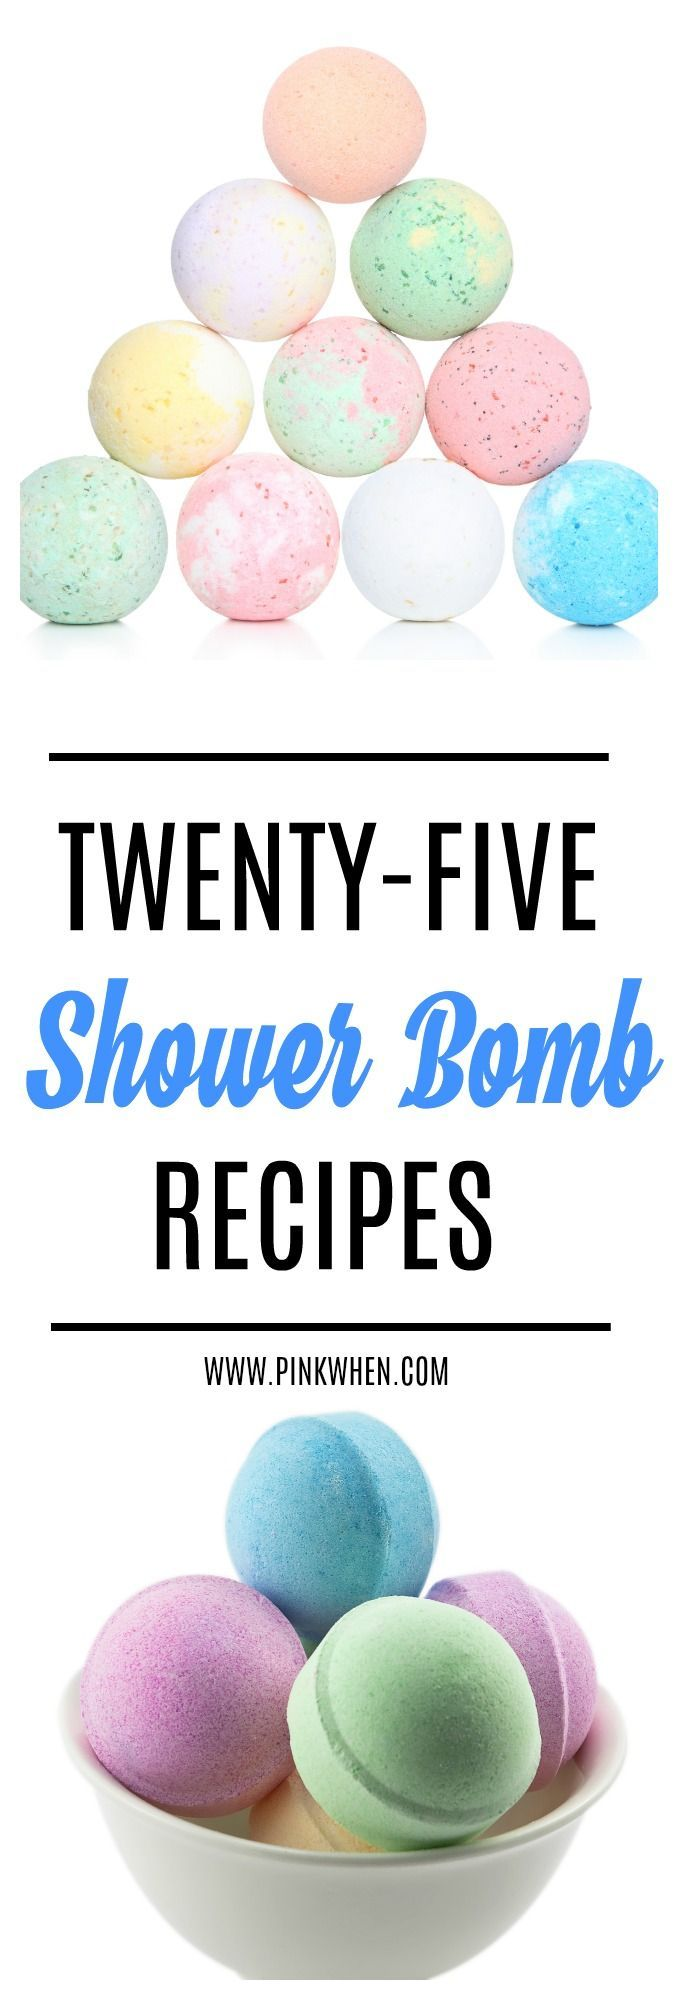 Check out our list of 25 Shower Bombs That Make Perfect Gifts for any occasion! These are ideal for soothing, having fun making with kids, and more! PINKWHEN